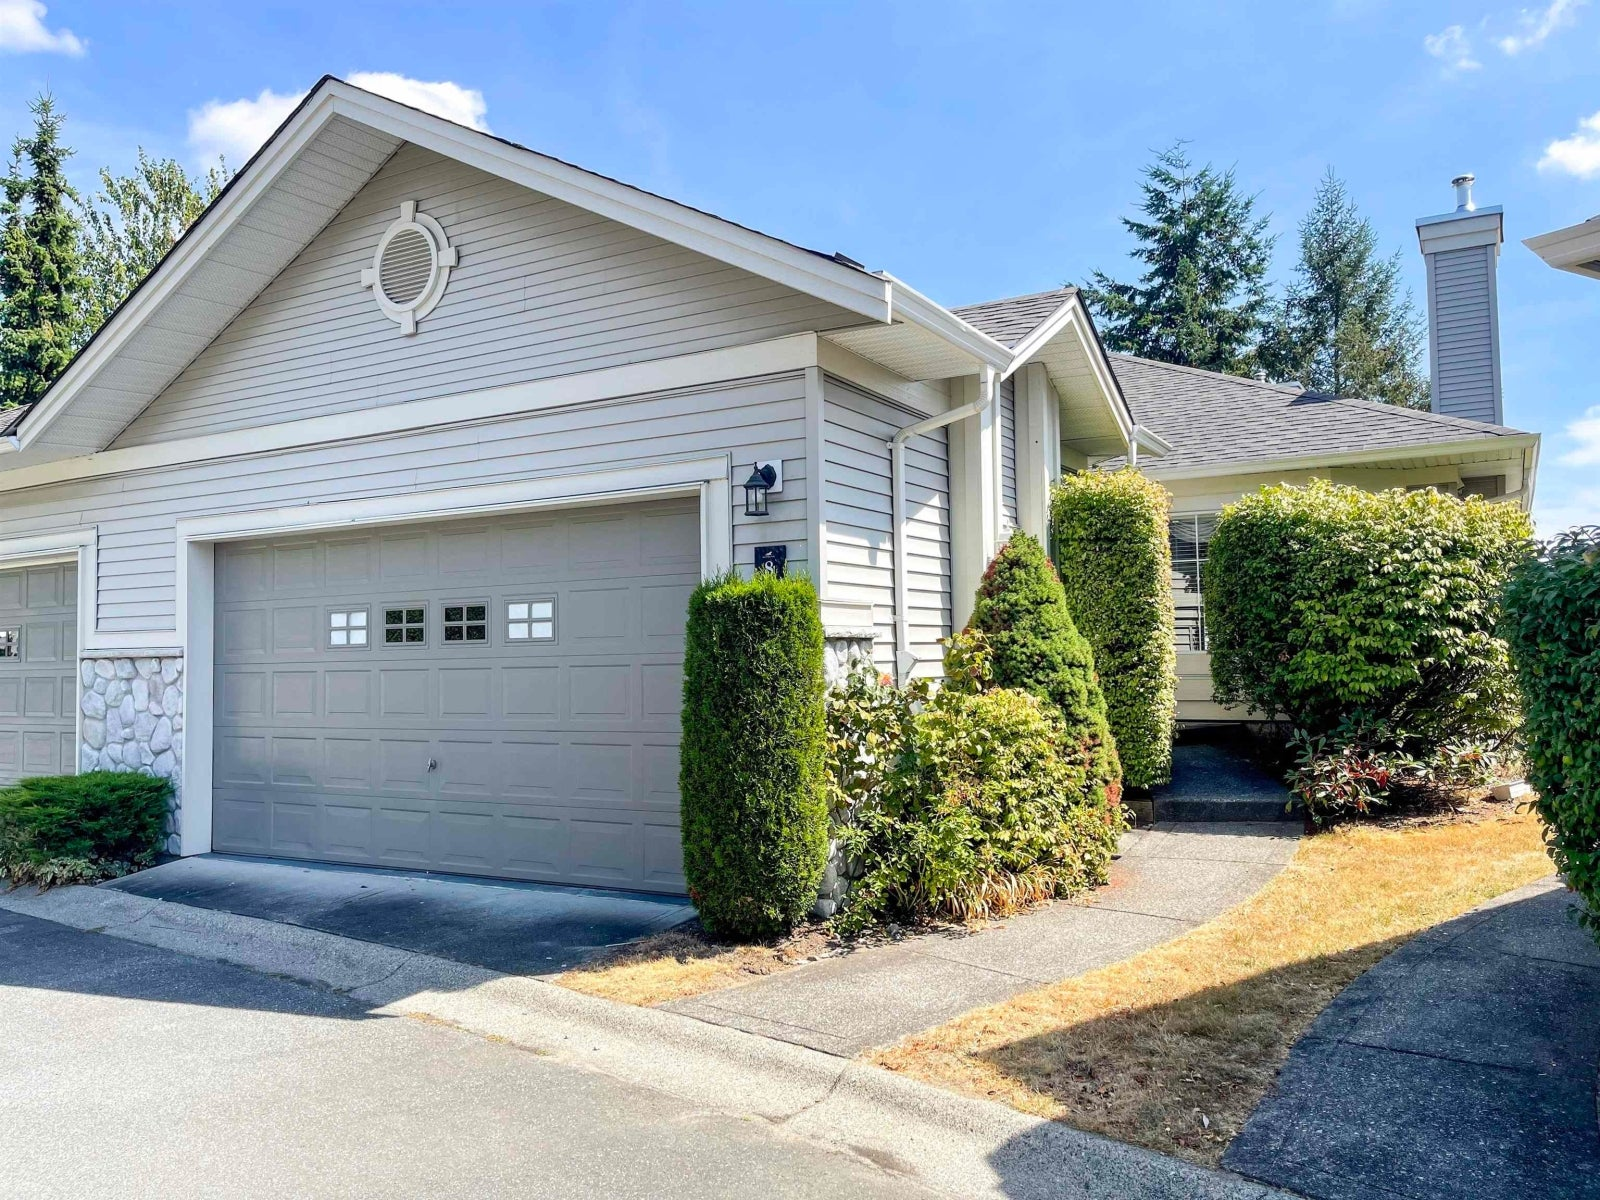 8 16888 80 AVENUE - Fleetwood Tynehead Townhouse for sale, 3 Bedrooms (R2618785) #1